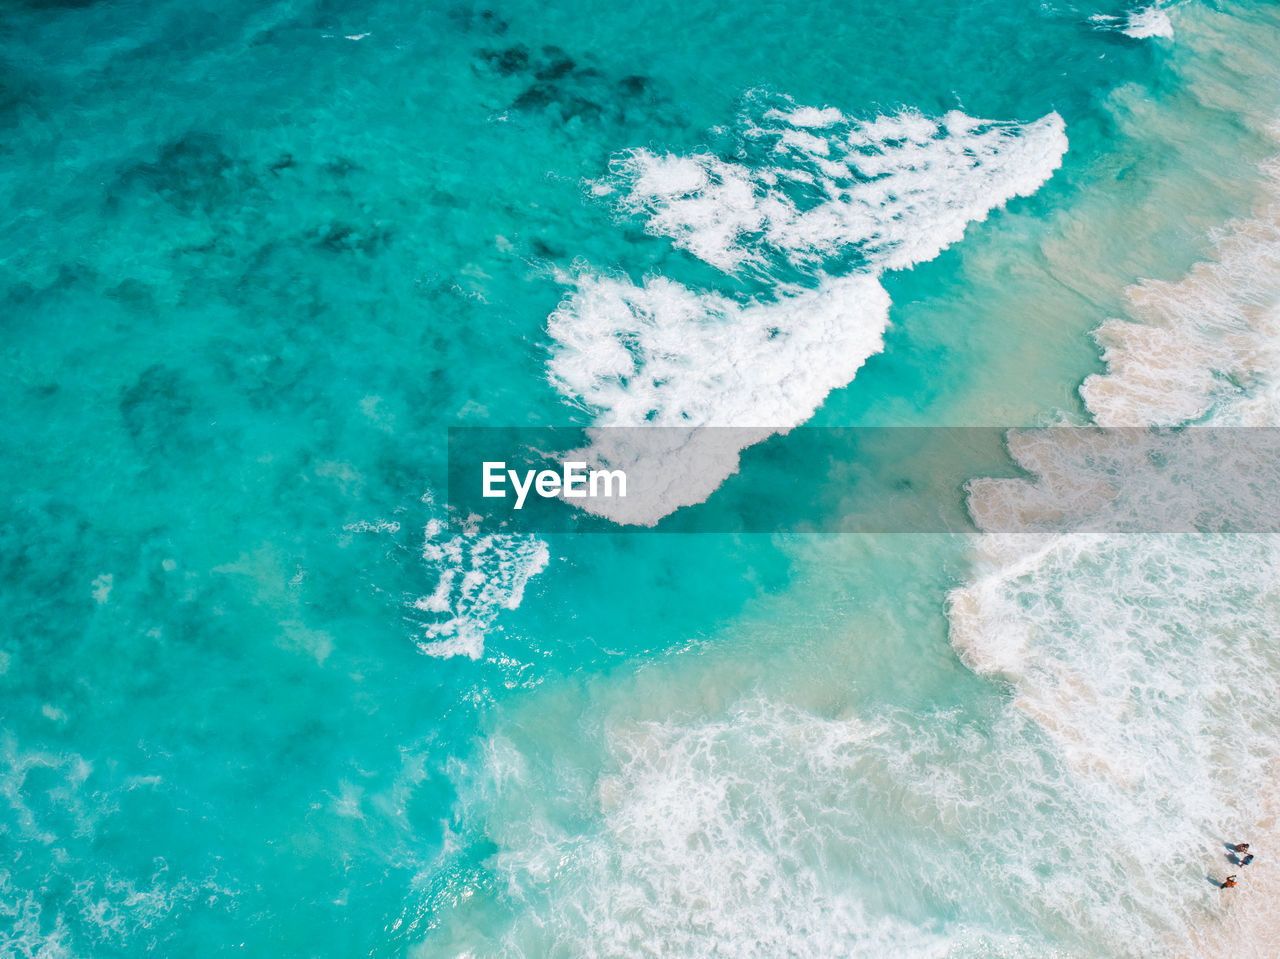 sea, wave, motion, water, sport, surfing, aquatic sport, nature, beauty in nature, day, blue, turquoise colored, outdoors, high angle view, backgrounds, full frame, scenics - nature, beach, swimming pool, power in nature, breaking